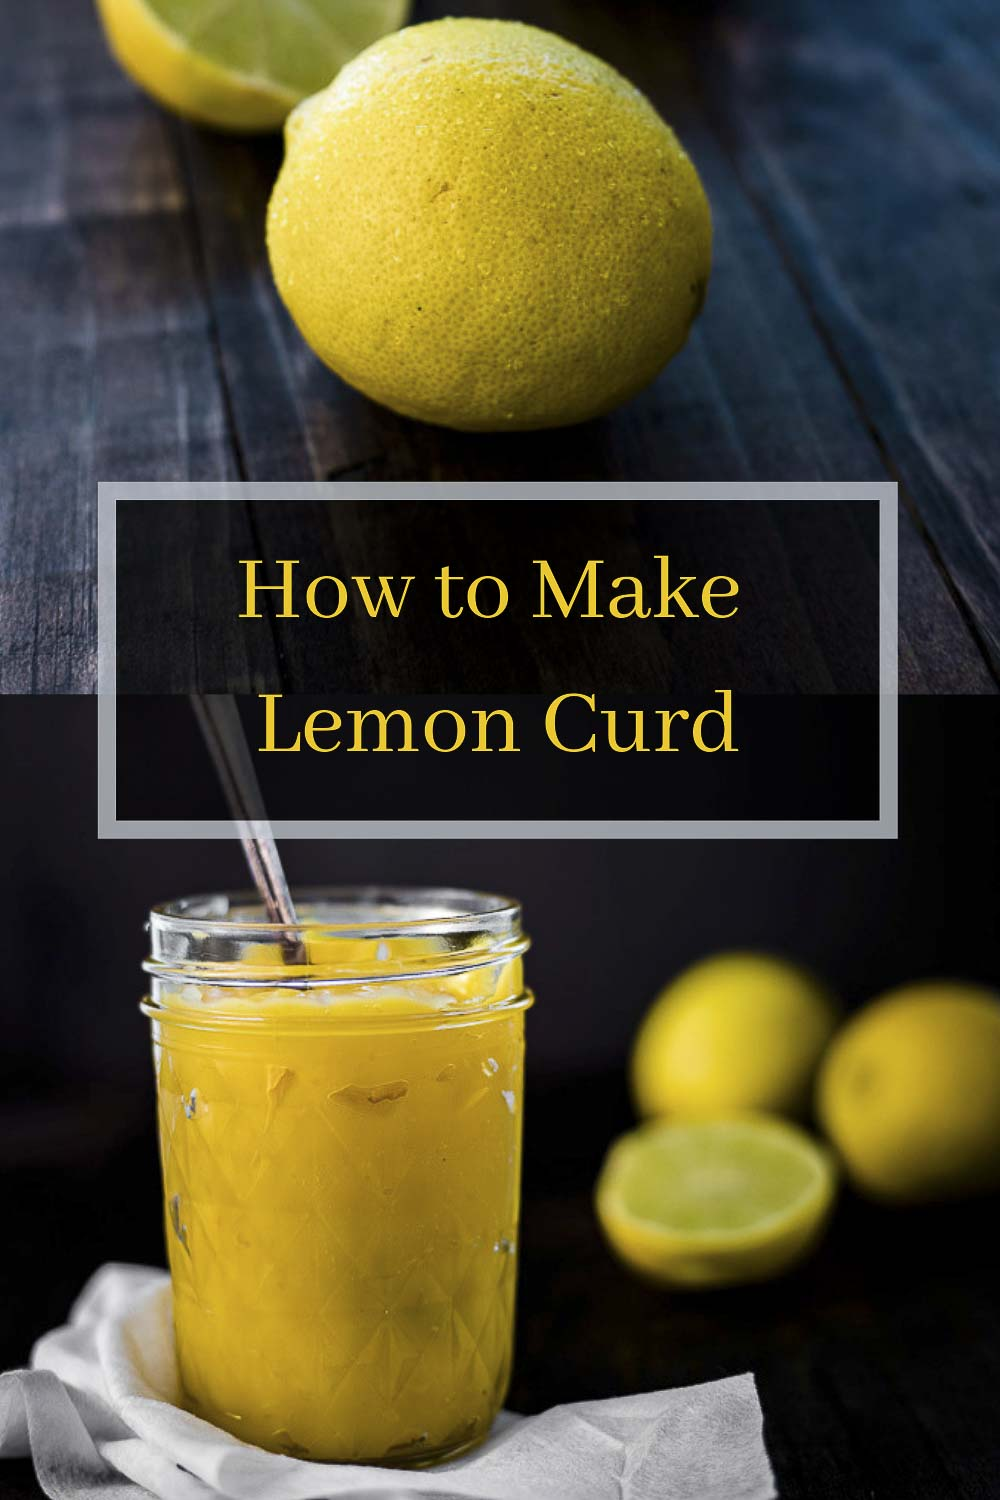 How To Make Lemon Curd (Step-by-Step Instructions)